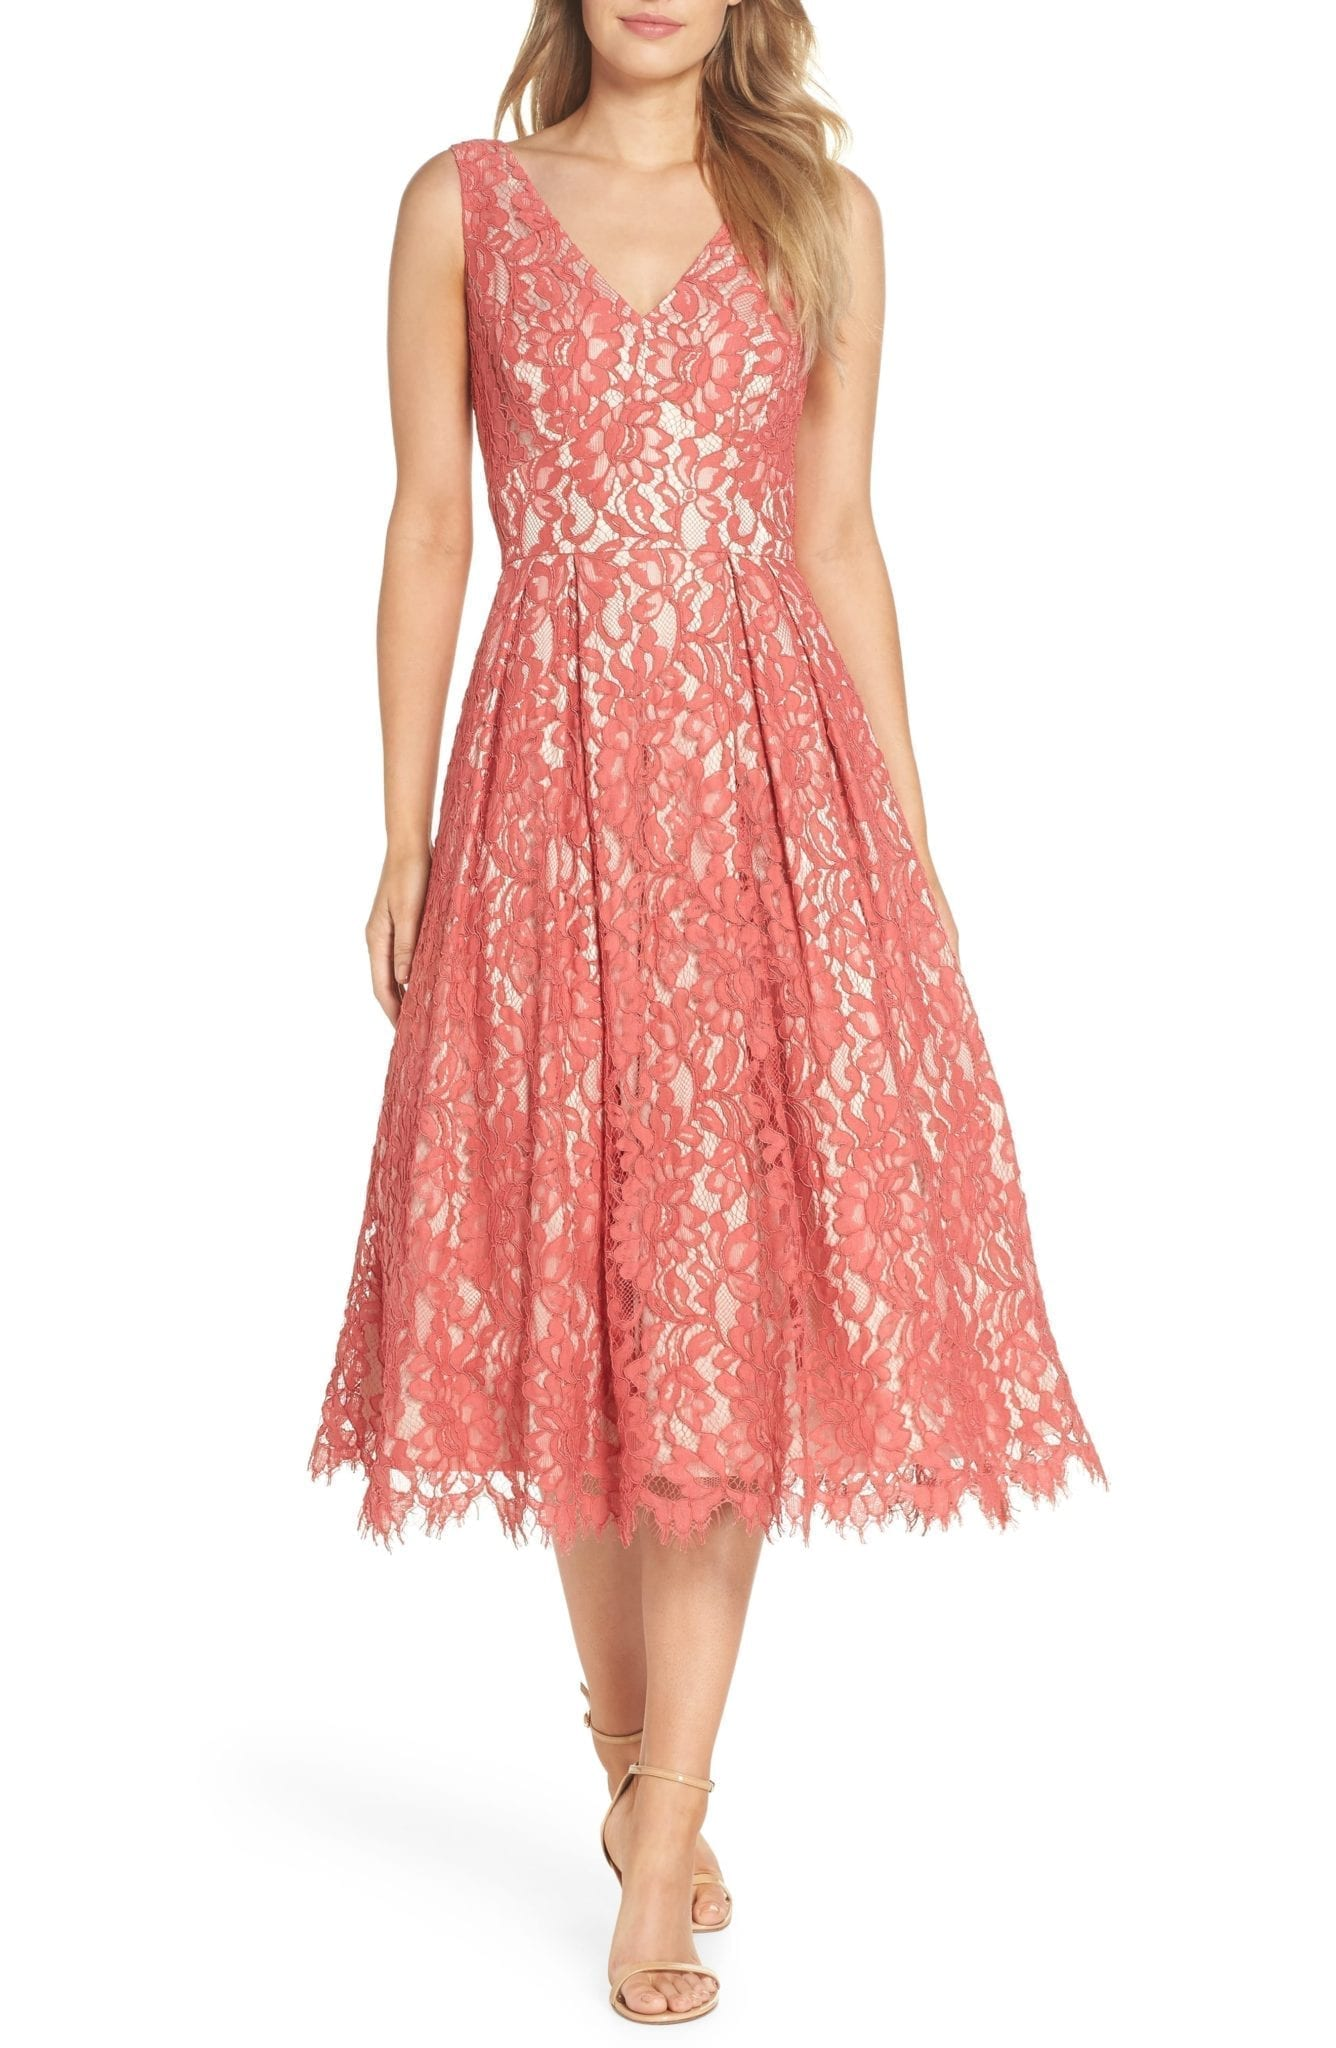 a93b788b5c ELIZA J V-Neck Lace Midi Rose Dress - We Select Dresses